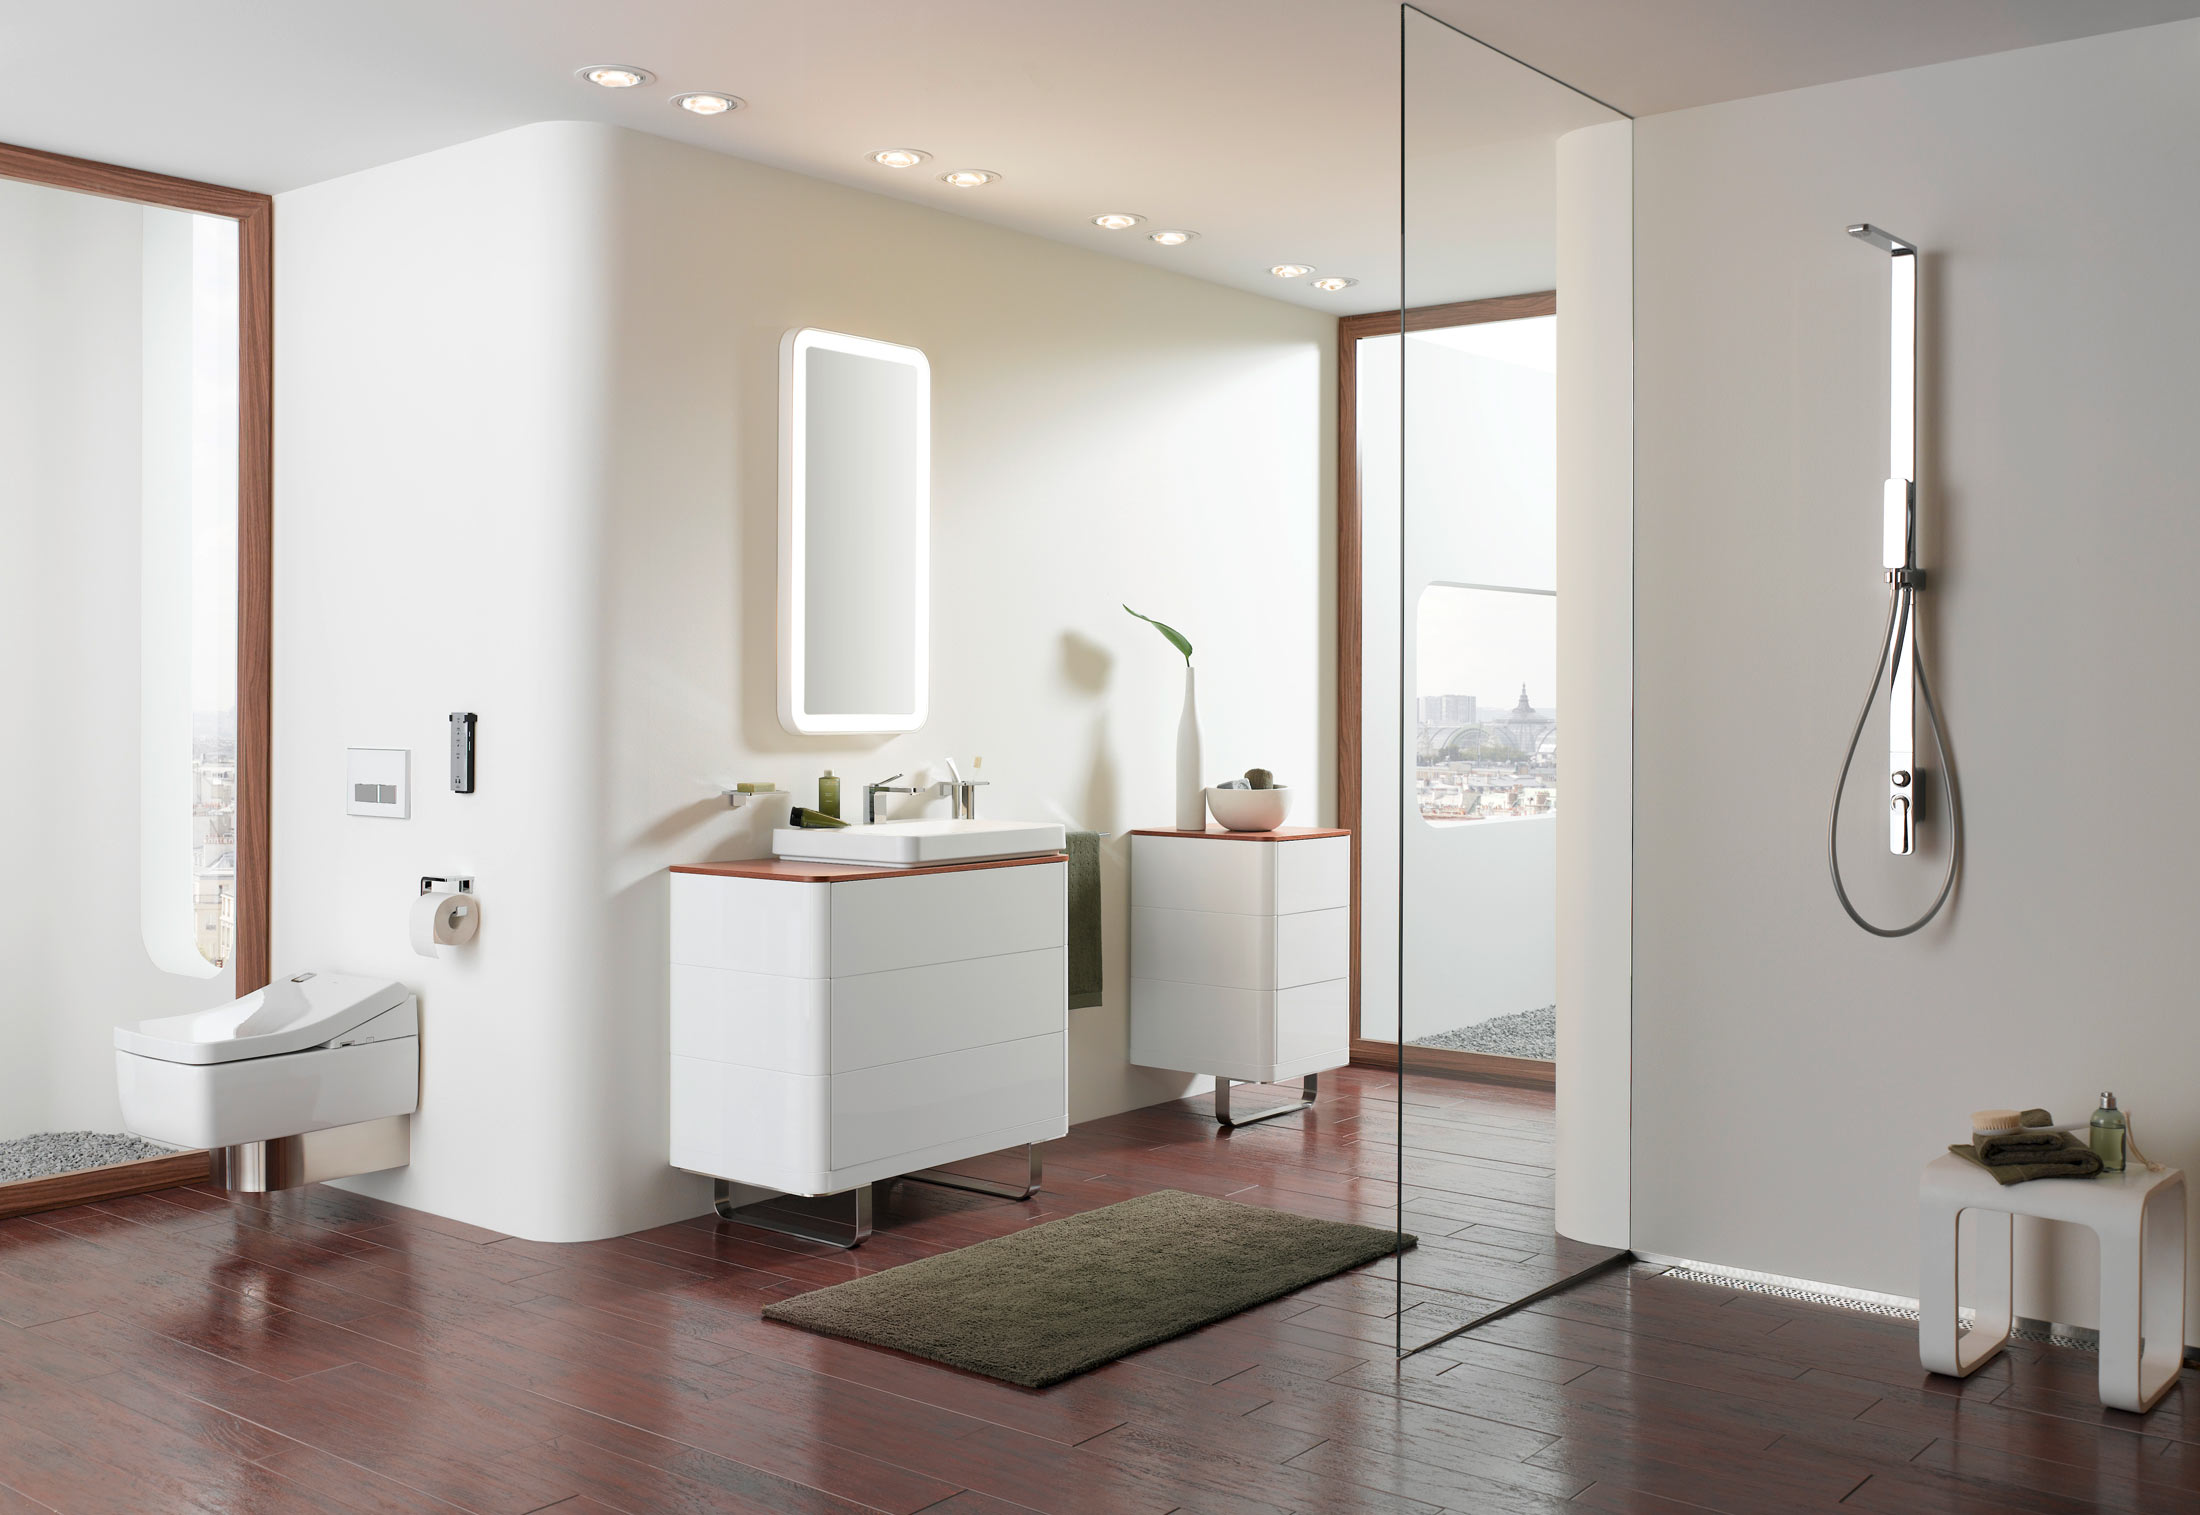 pretty bathroom decor ideas with white wall matched with wooden floor plus bathroom cabinet and toto washlet